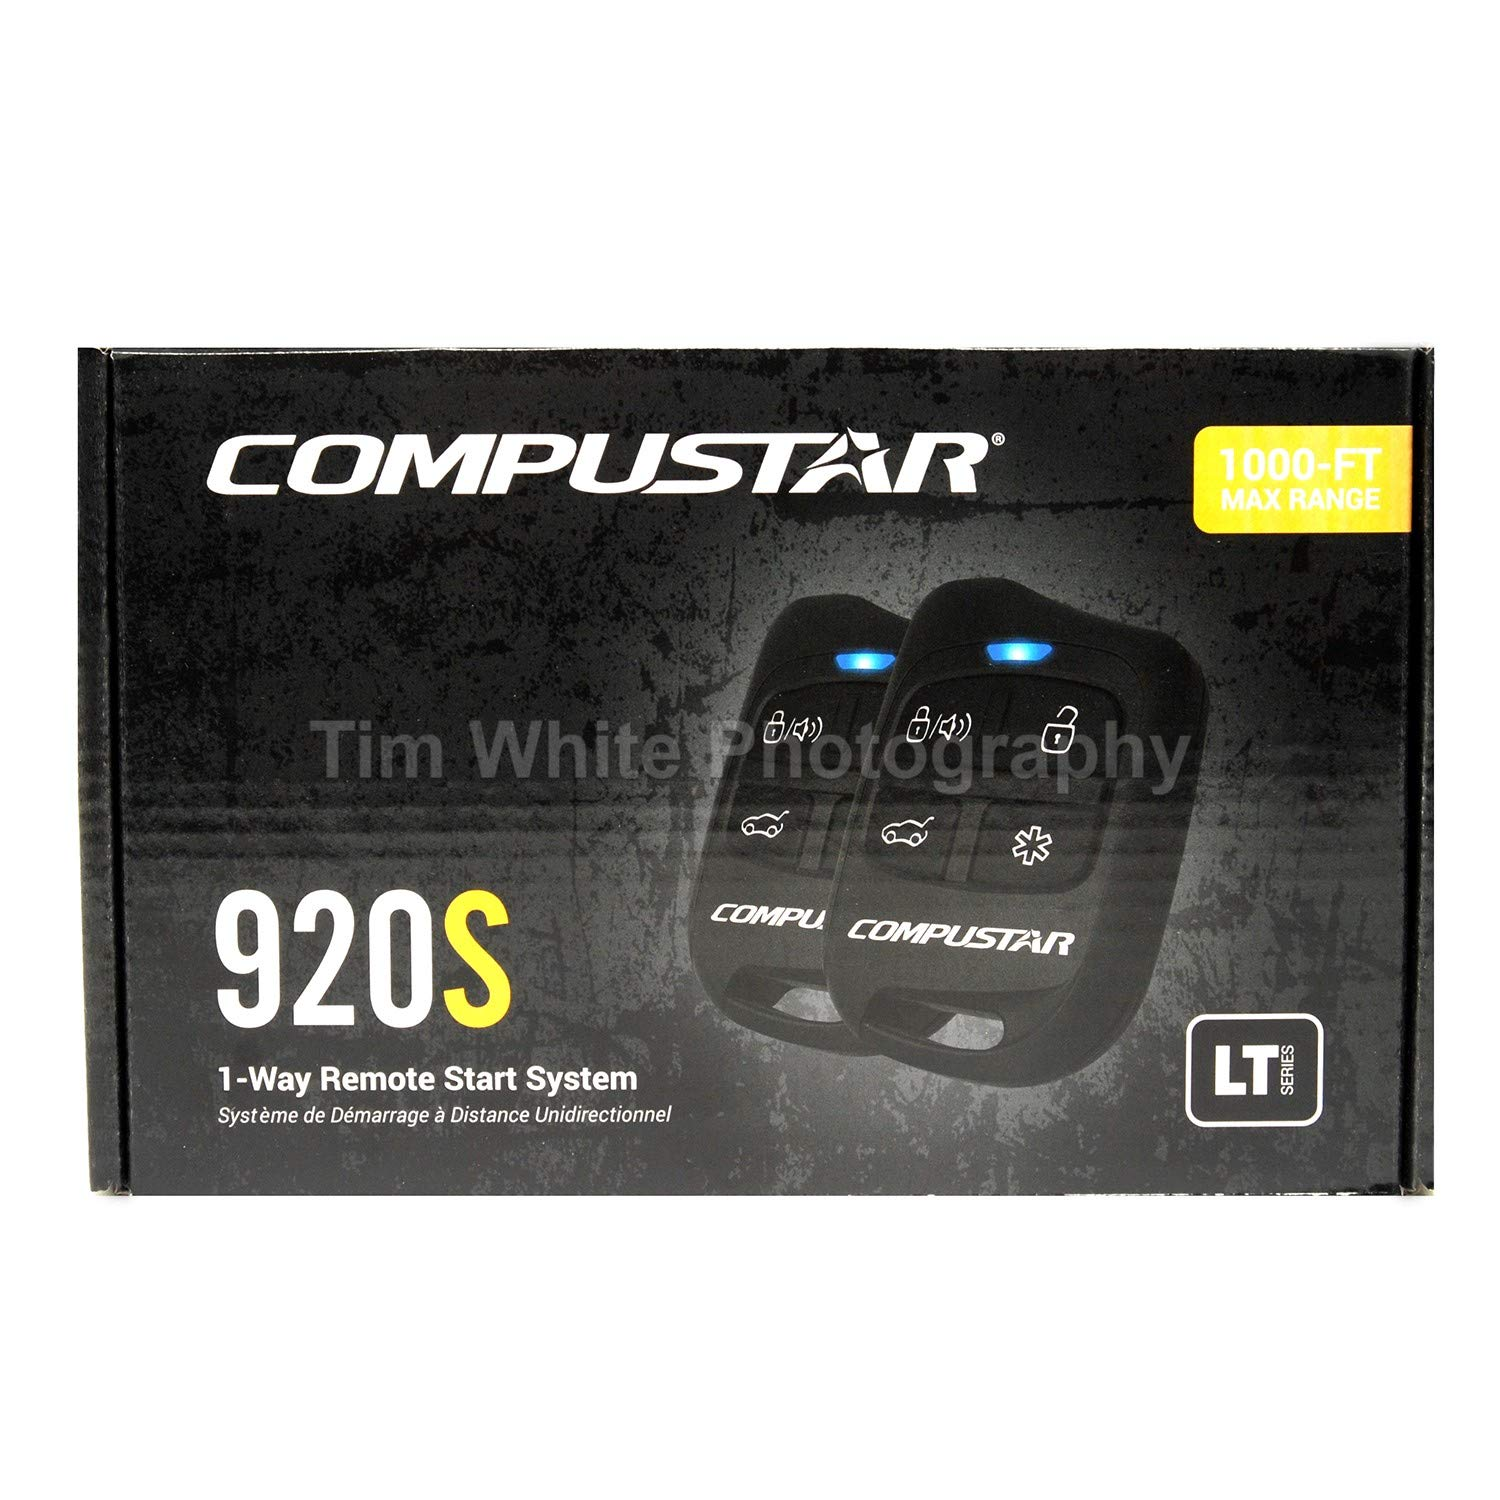 Compustar CS920-S 1-way Remote Start and Keyless Entry System with 1000-ft Range 4350412630 920S